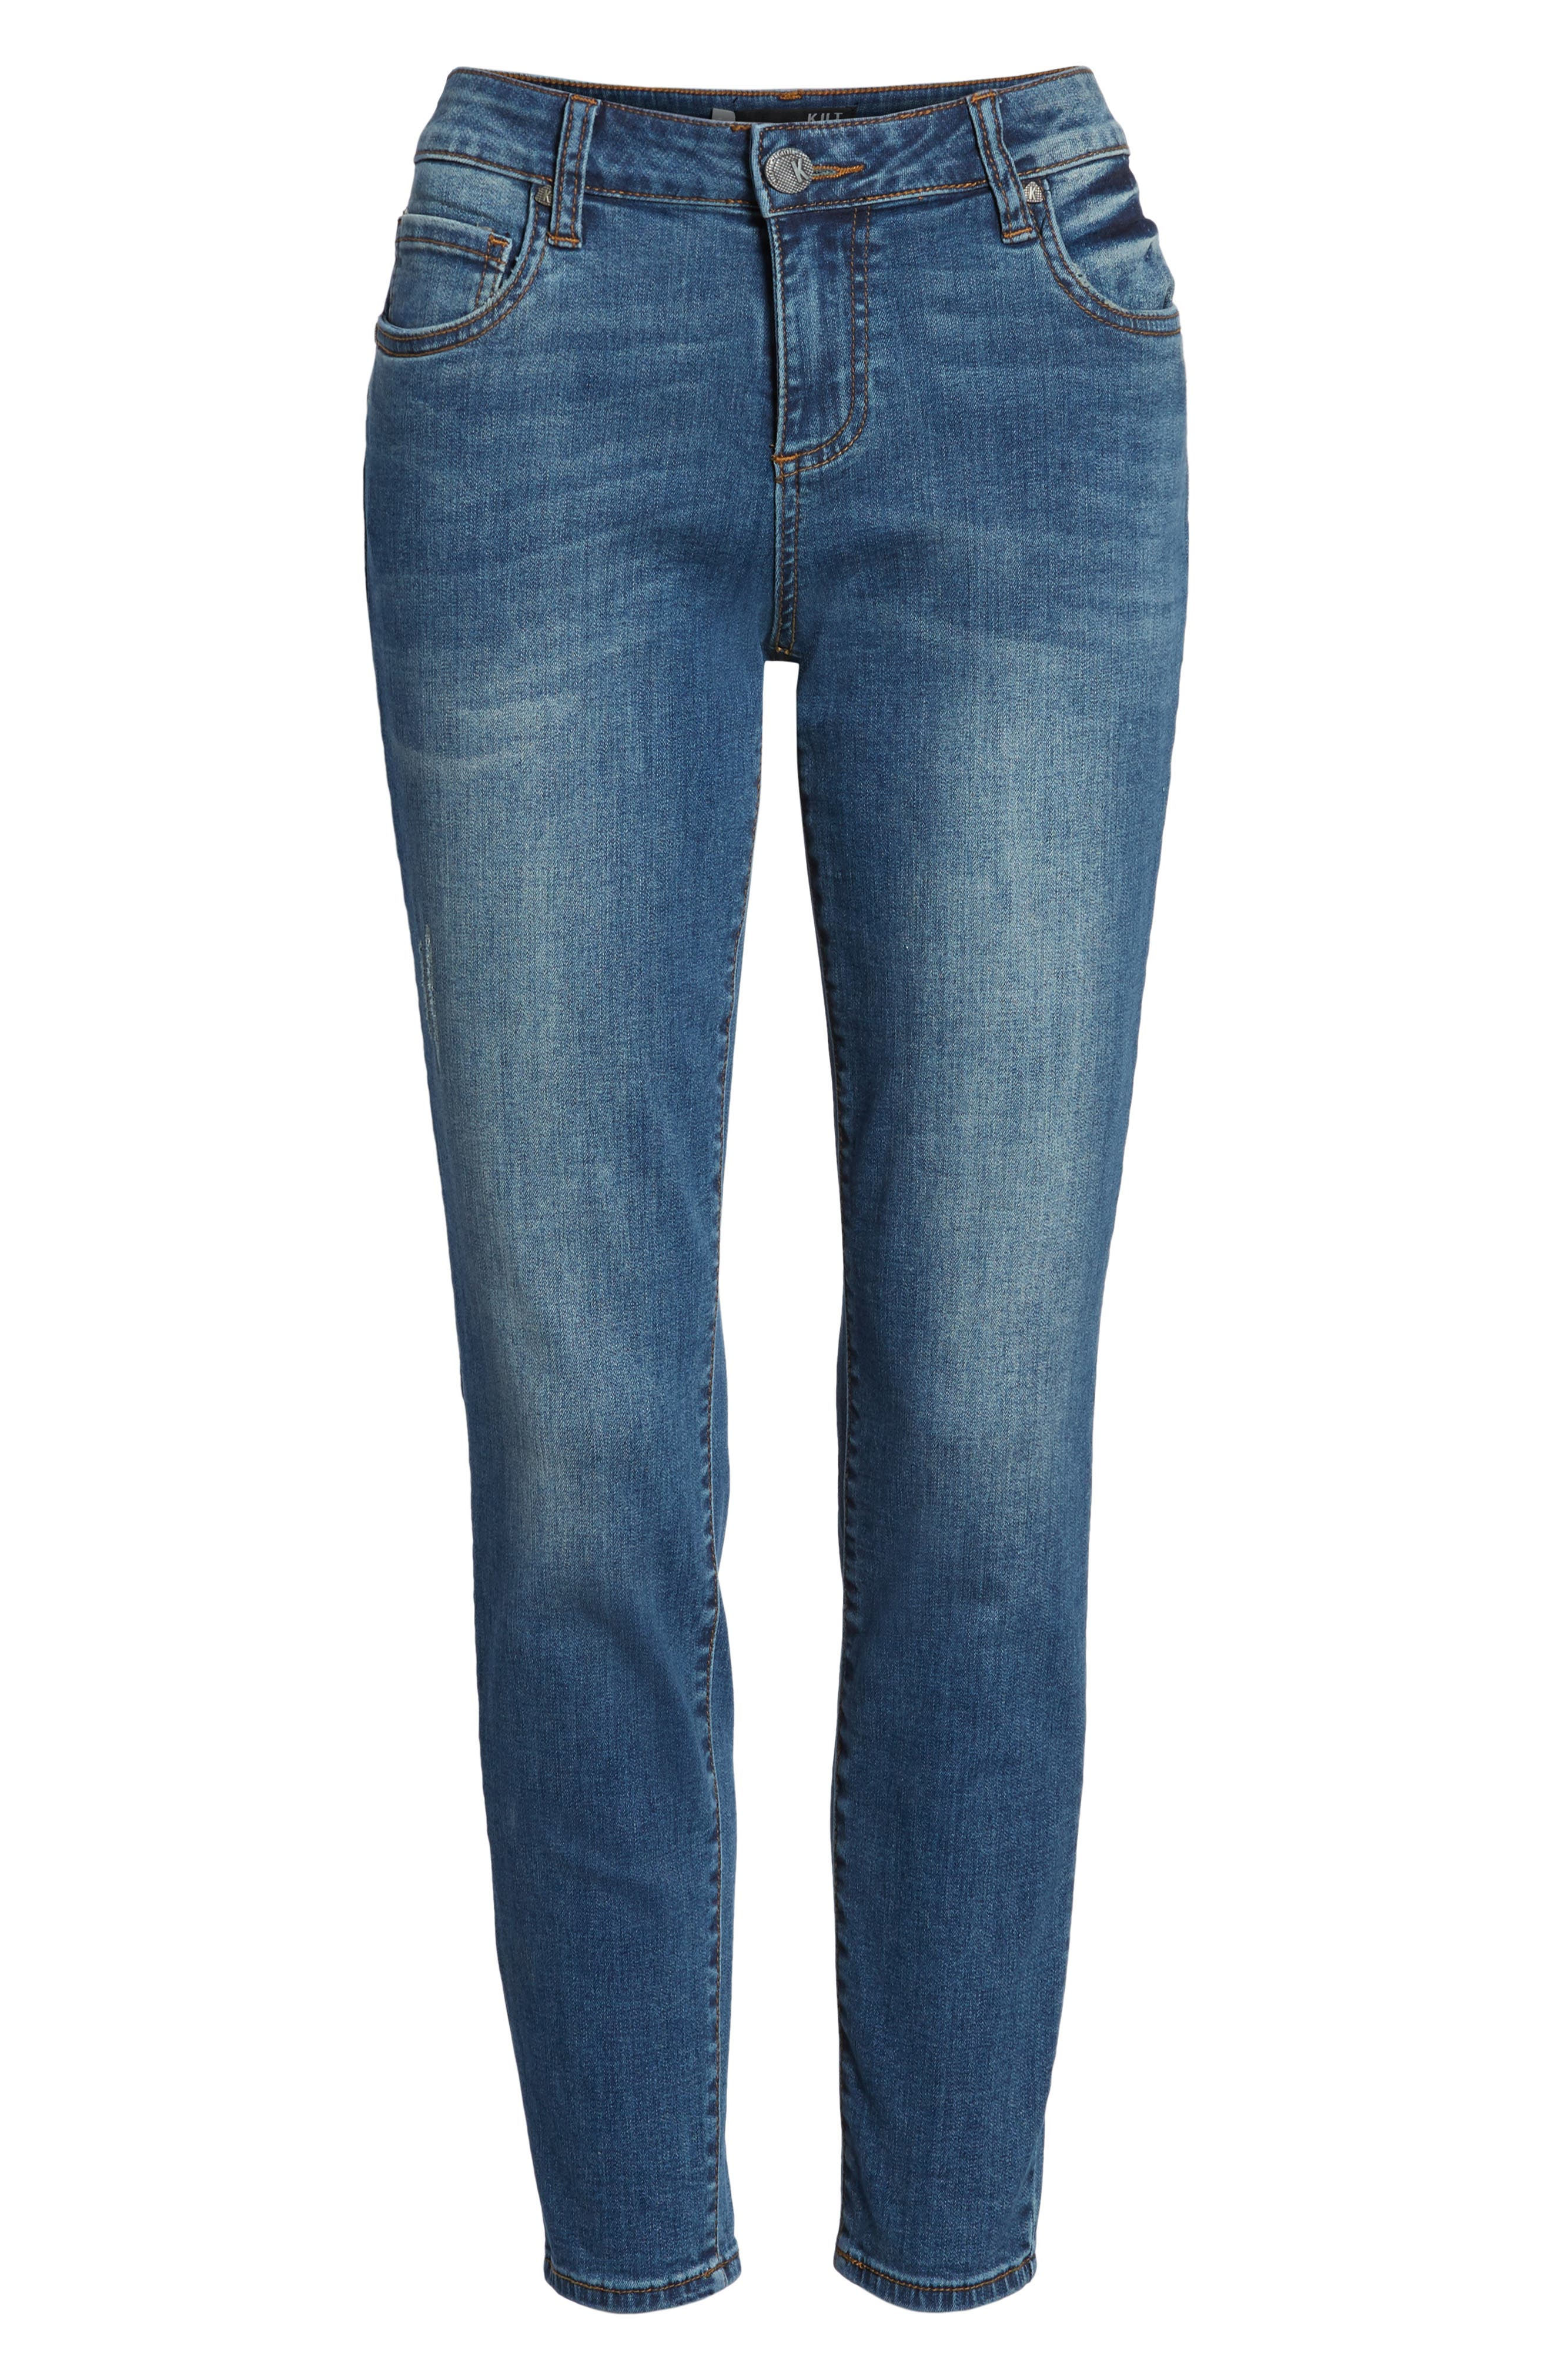 Donna Skinny Ankle Jeans,                             Alternate thumbnail 7, color,                             460